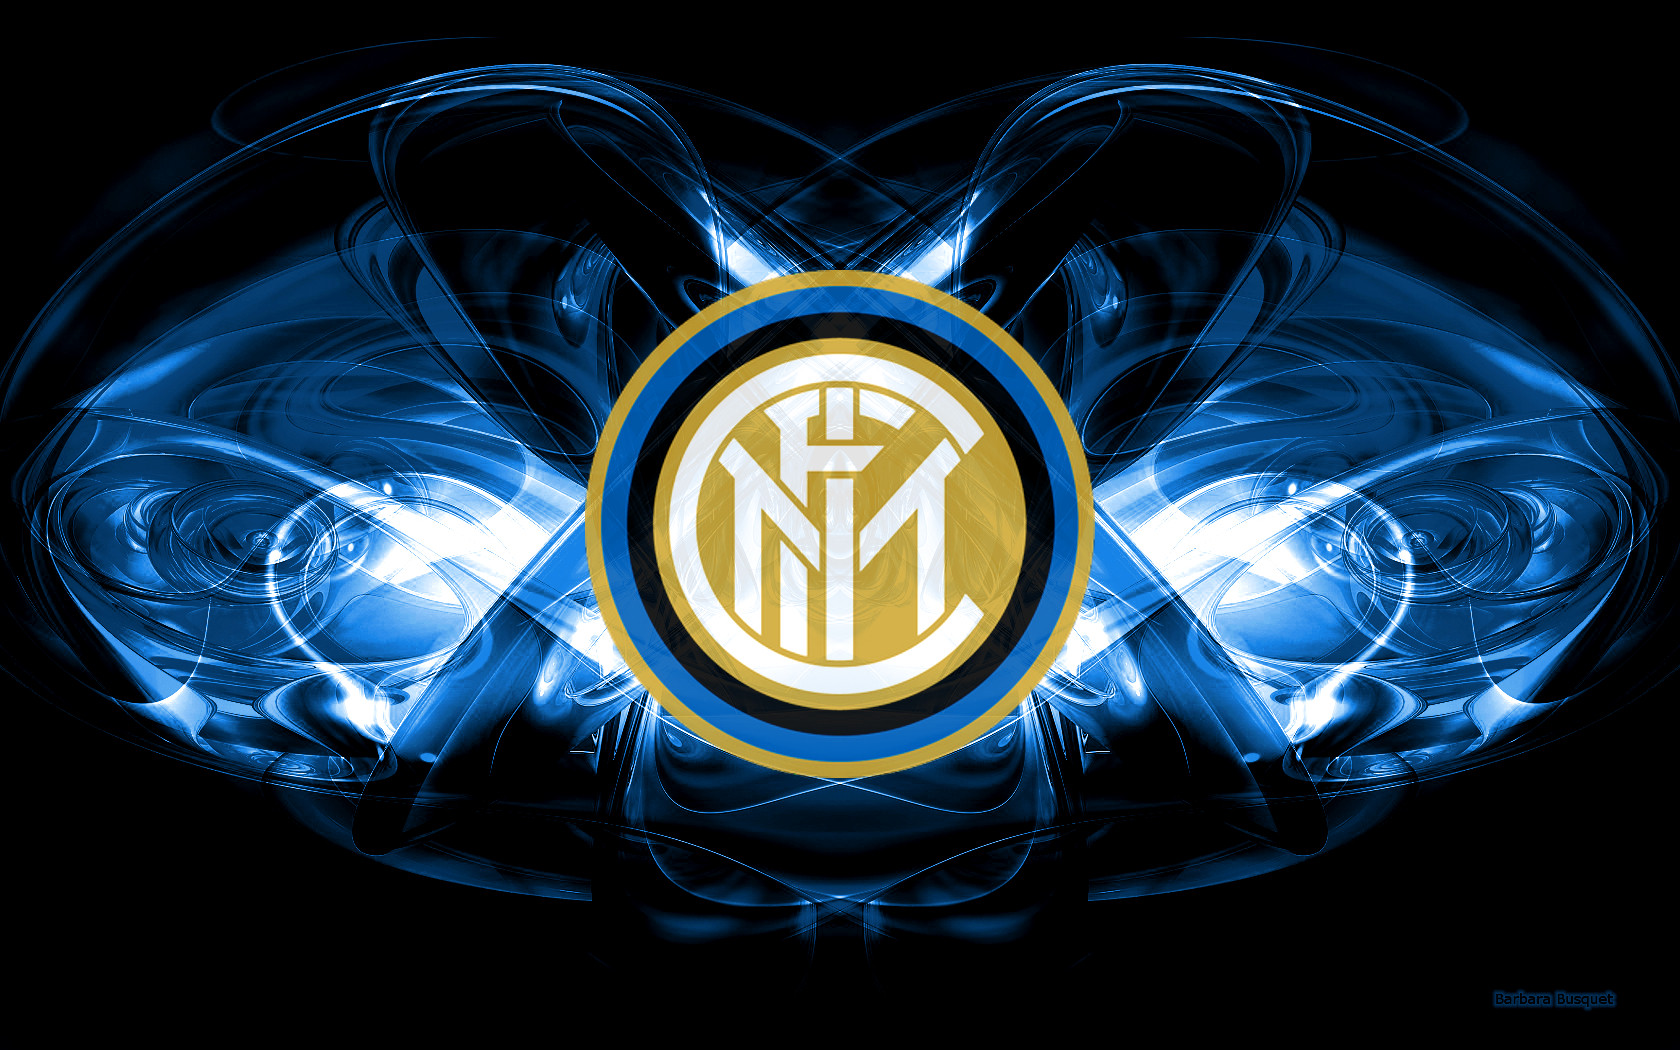 Inter milan internazionale barbaras hd wallpapers for Sfondi inter hd